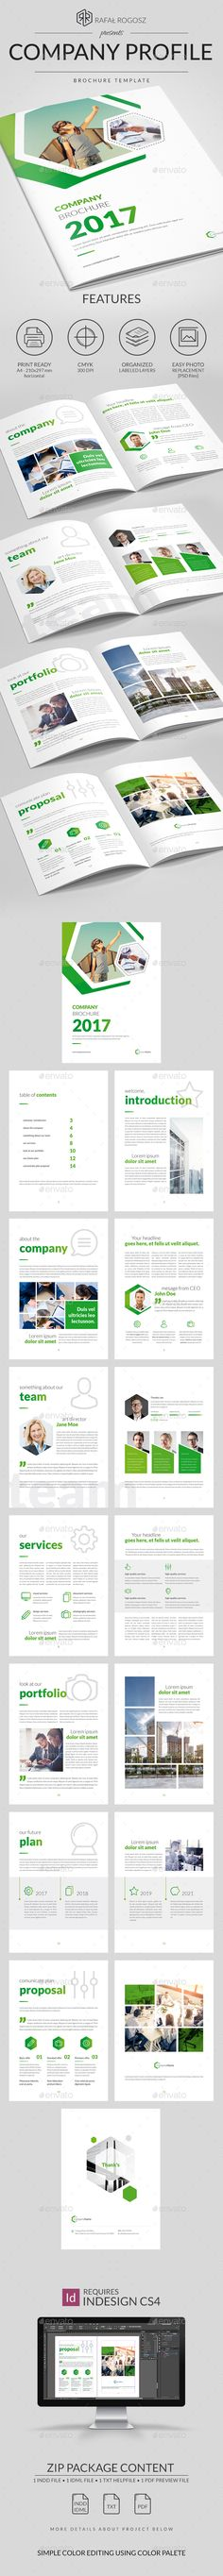 Company Profile Brochure Template Company profile, Brochure - profile company template